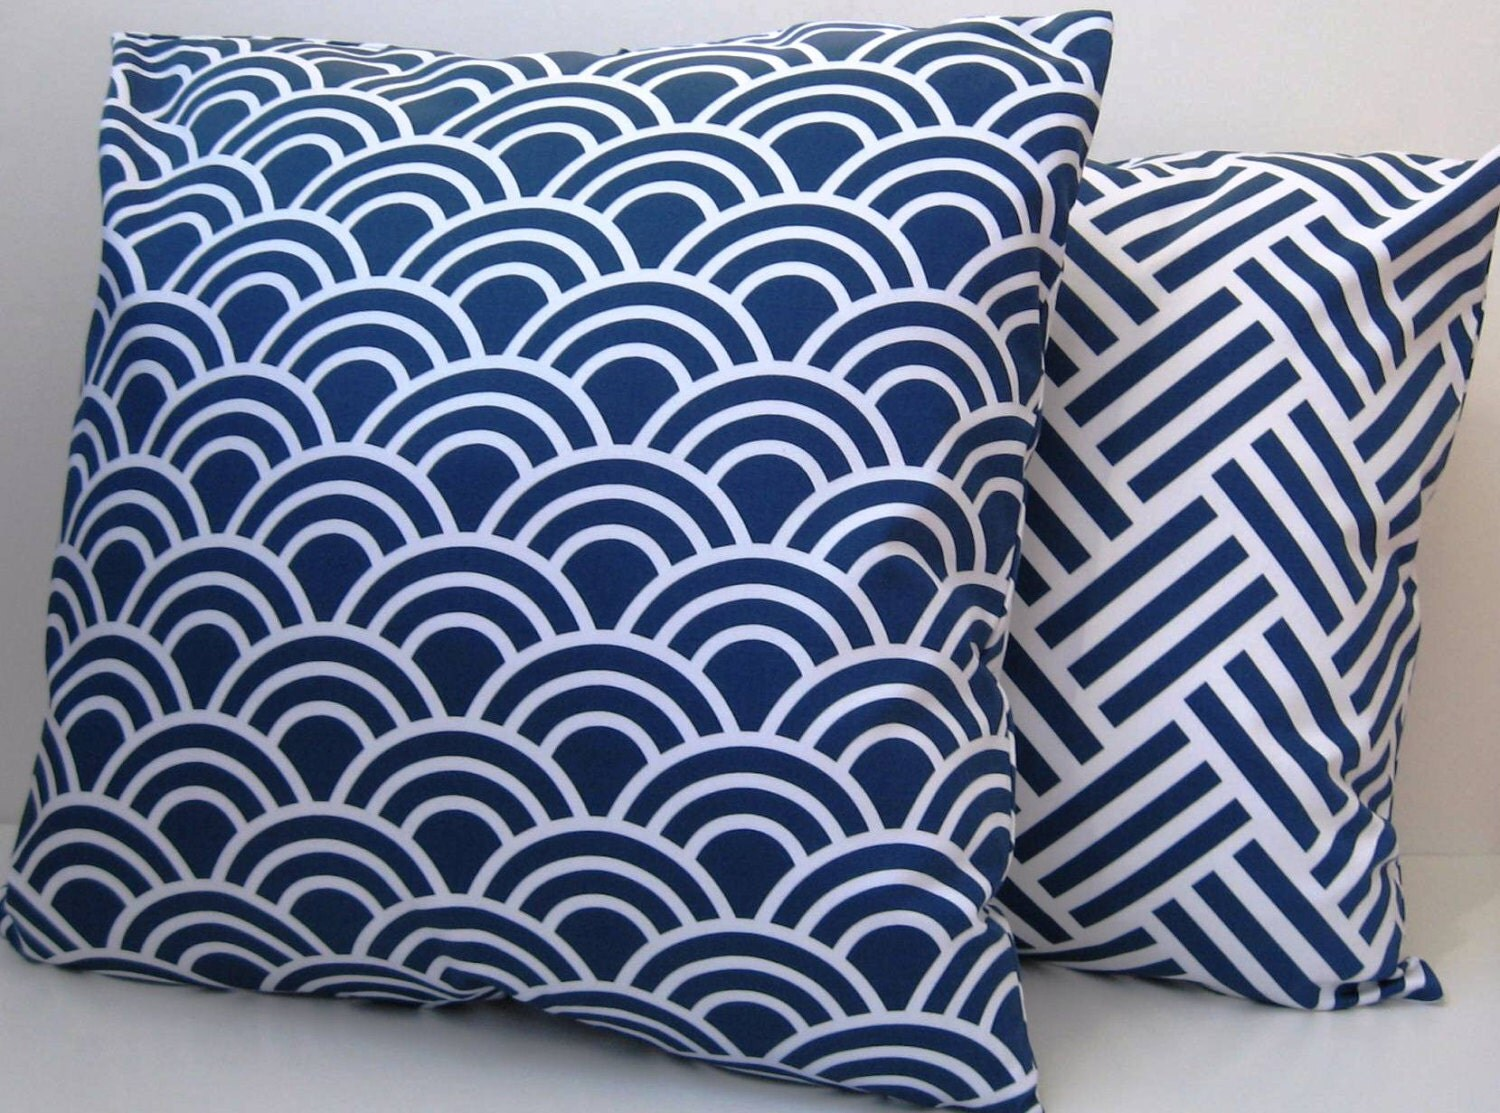 Modern White Pillows : Blue and White Pillow Cover Modern Pillow Decorative